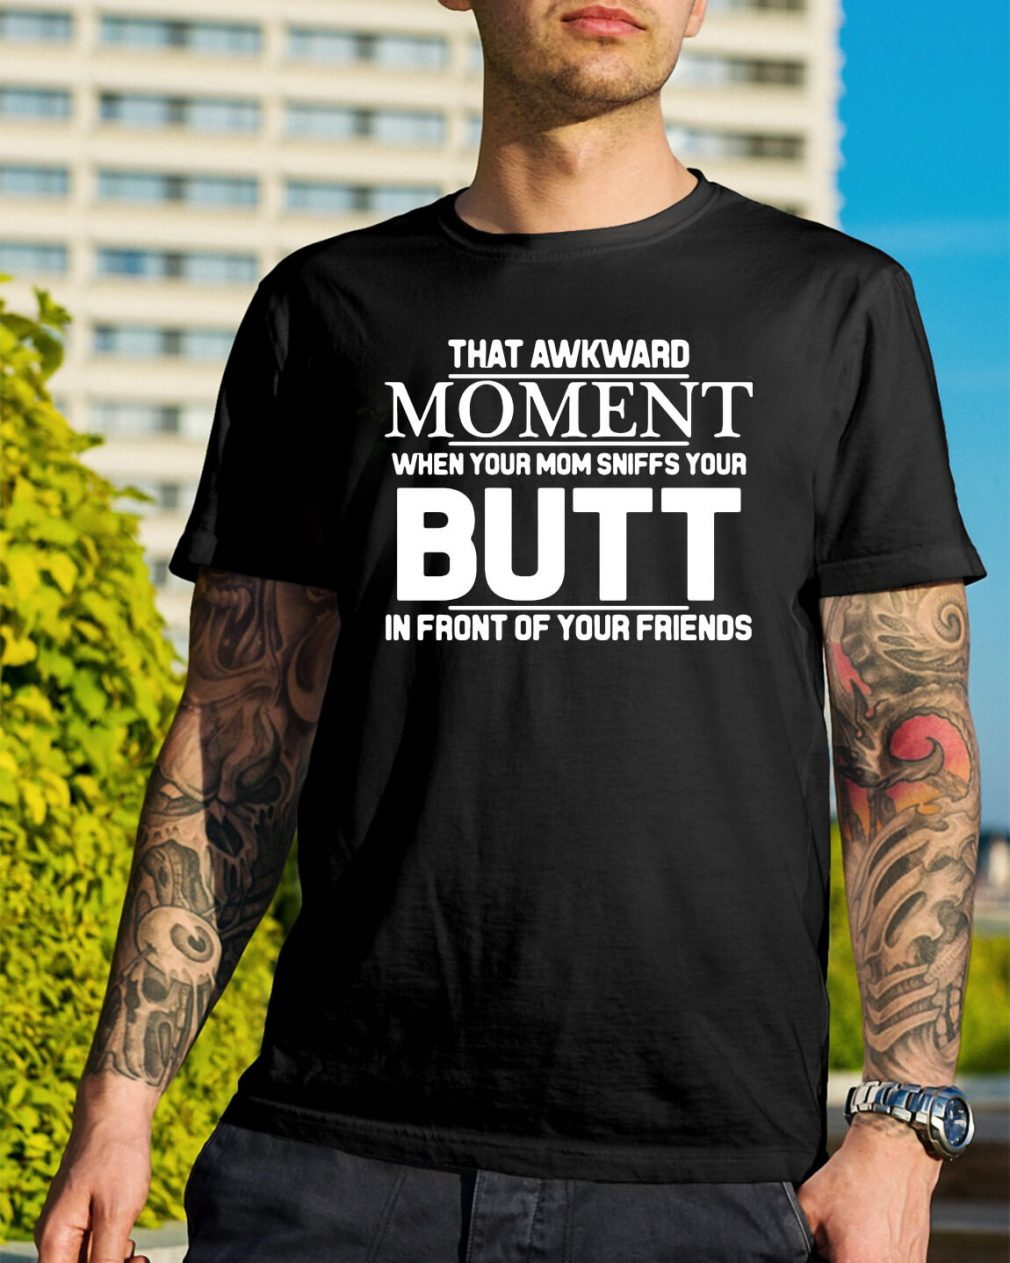 The awkward moment when your mom sniffs your butt shirt